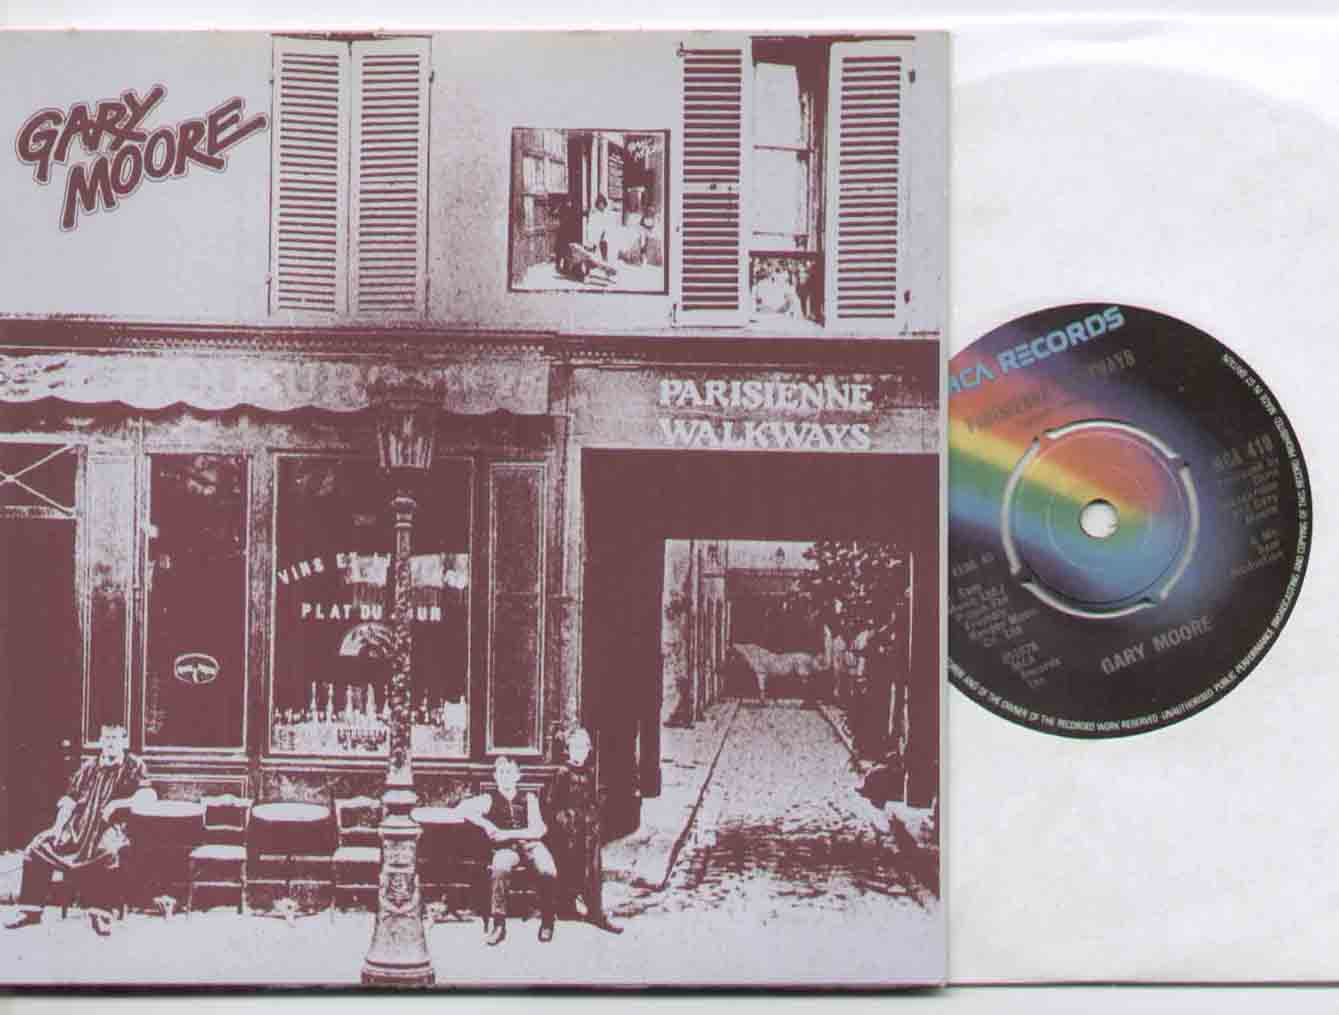 Gary Moore - Parisienne Walkways CD